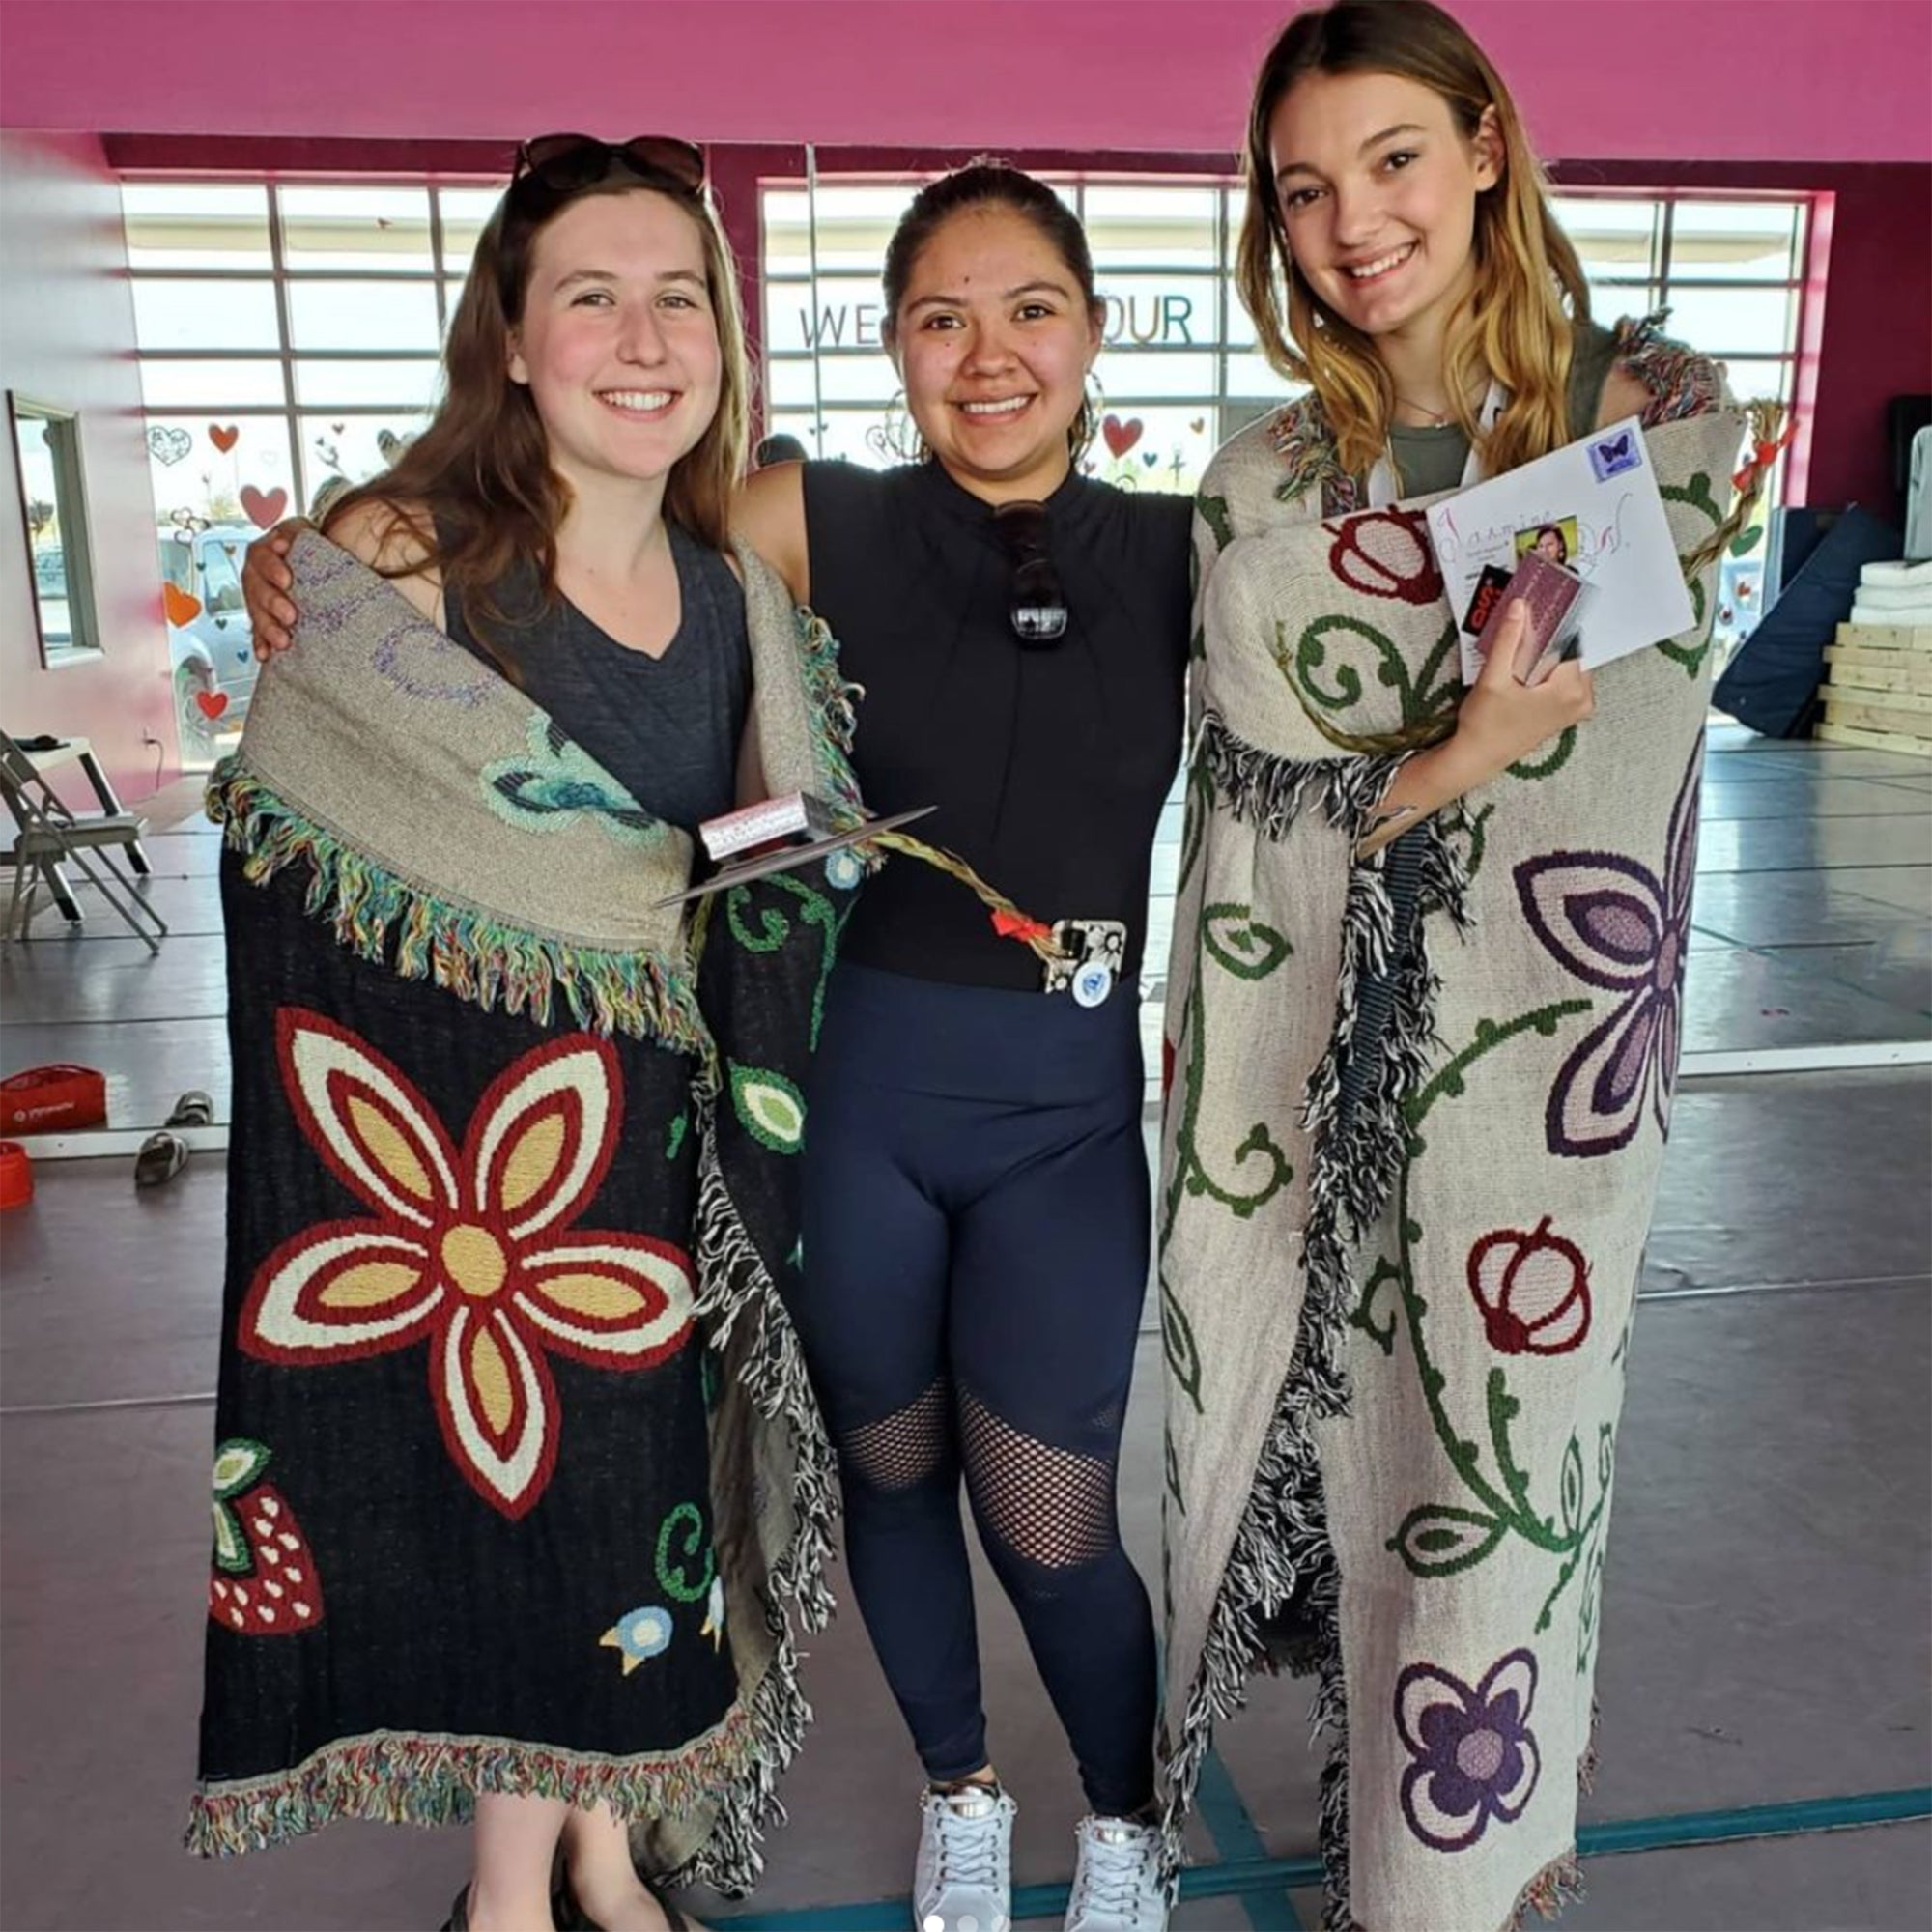 Three-women-stand-smiling-and-graduates-on-either-end-are-wrapped-in-a-black-and-a-beige-throw-blanket-with-woodland-floral-designs